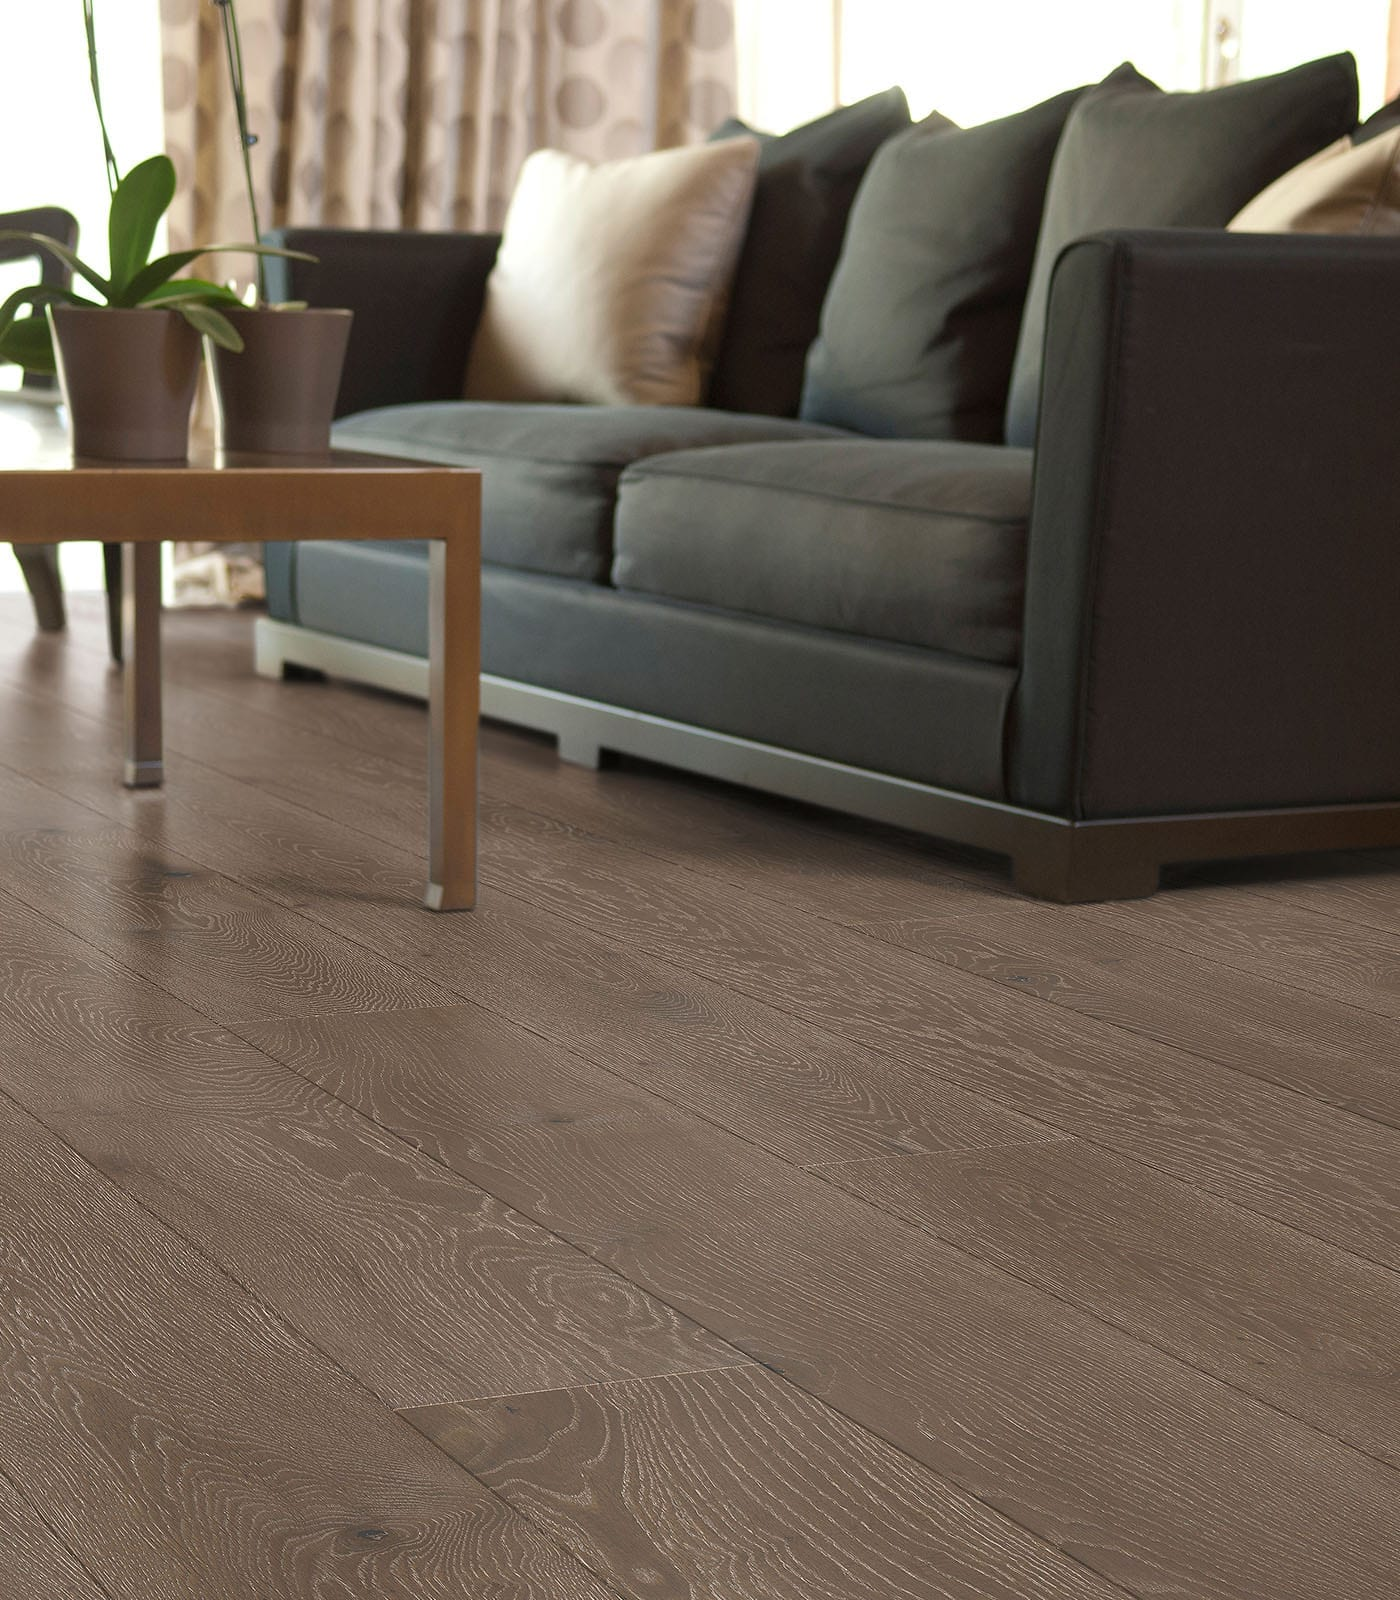 Havana-Colors Collection-European oak floors-room